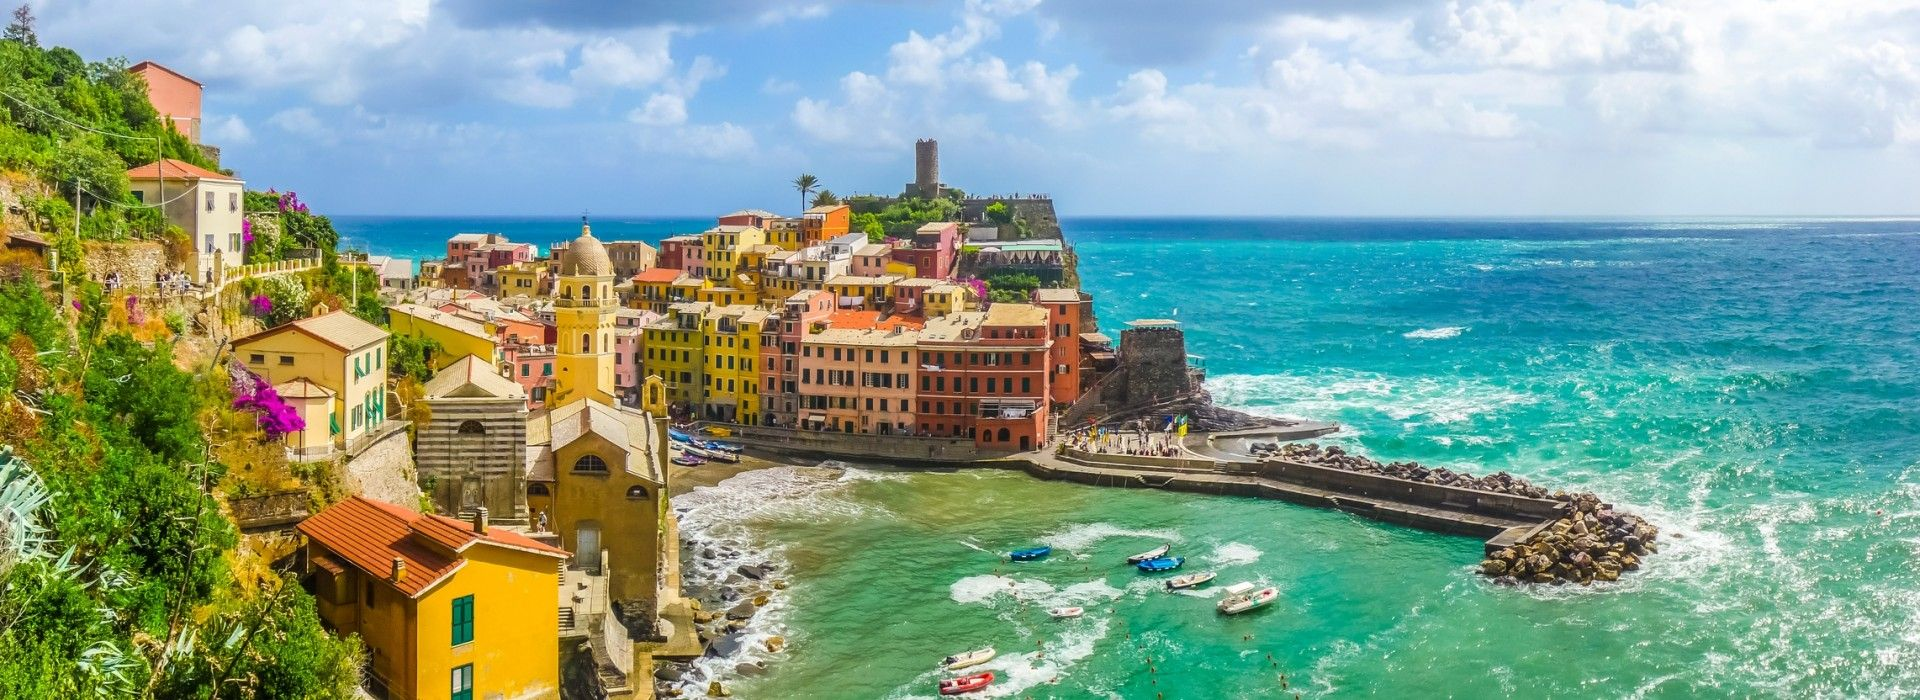 Sightseeing Tours in Italy